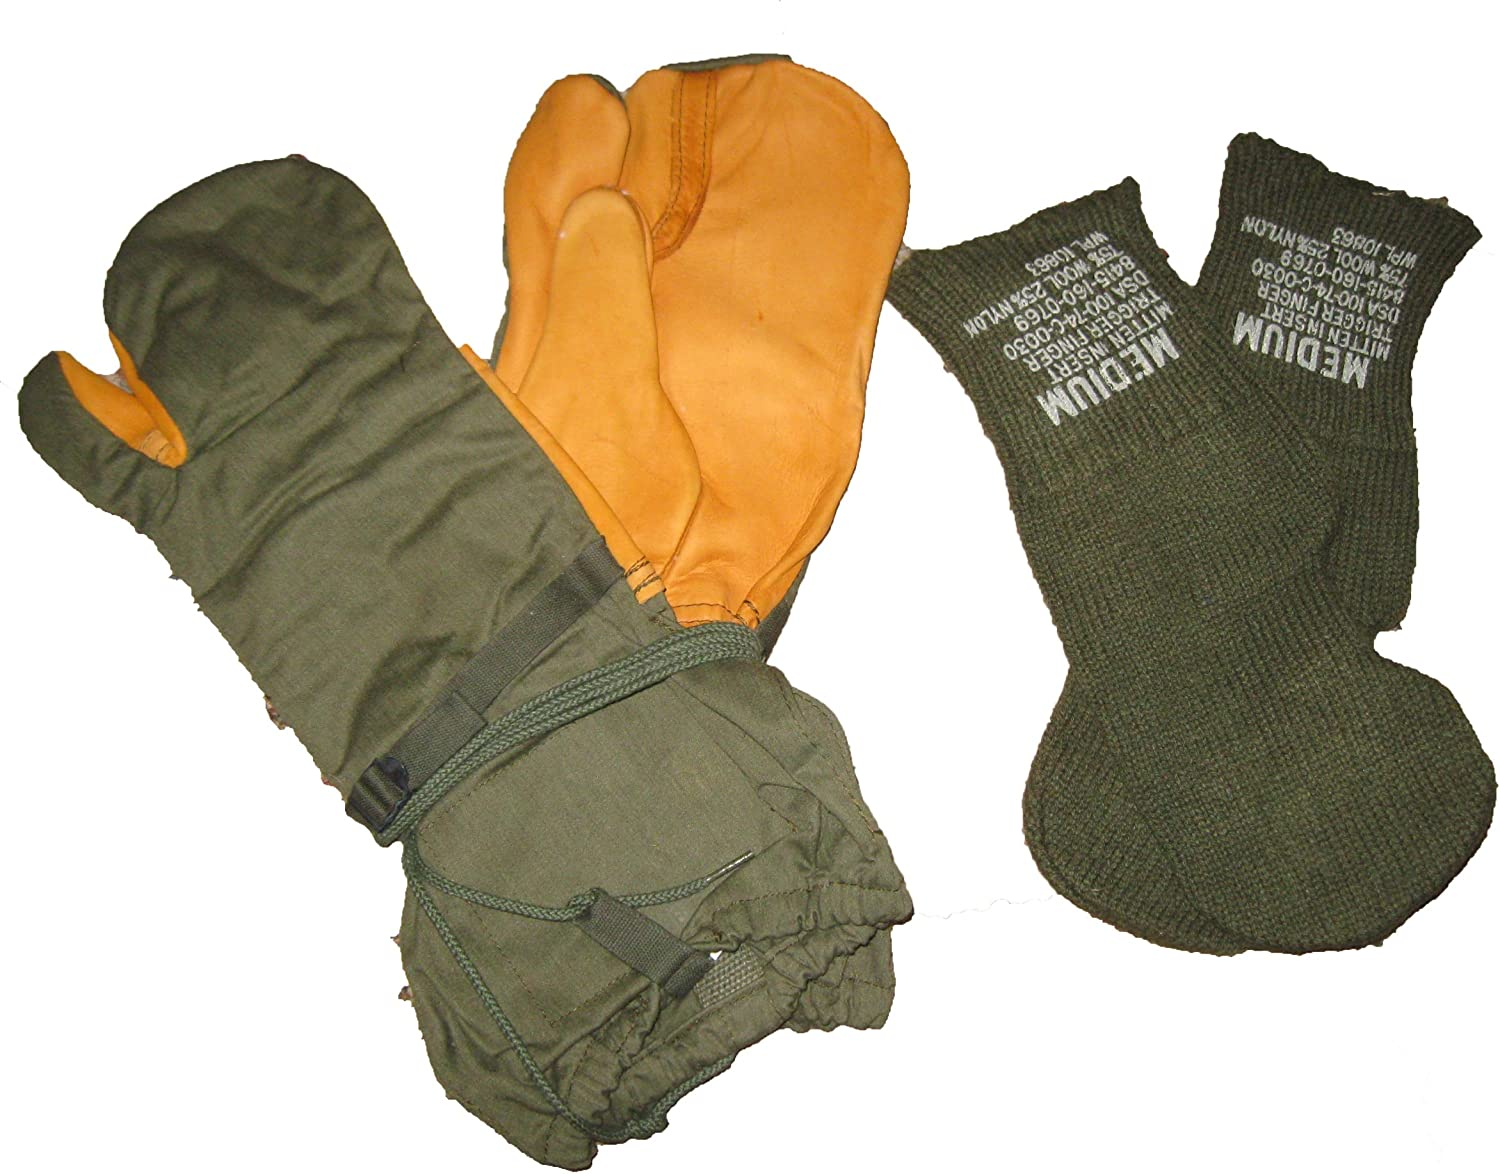 Shell Only Size: Large MILITARY COLD WEATHER TRIGGER FINGER MITTENS U.S